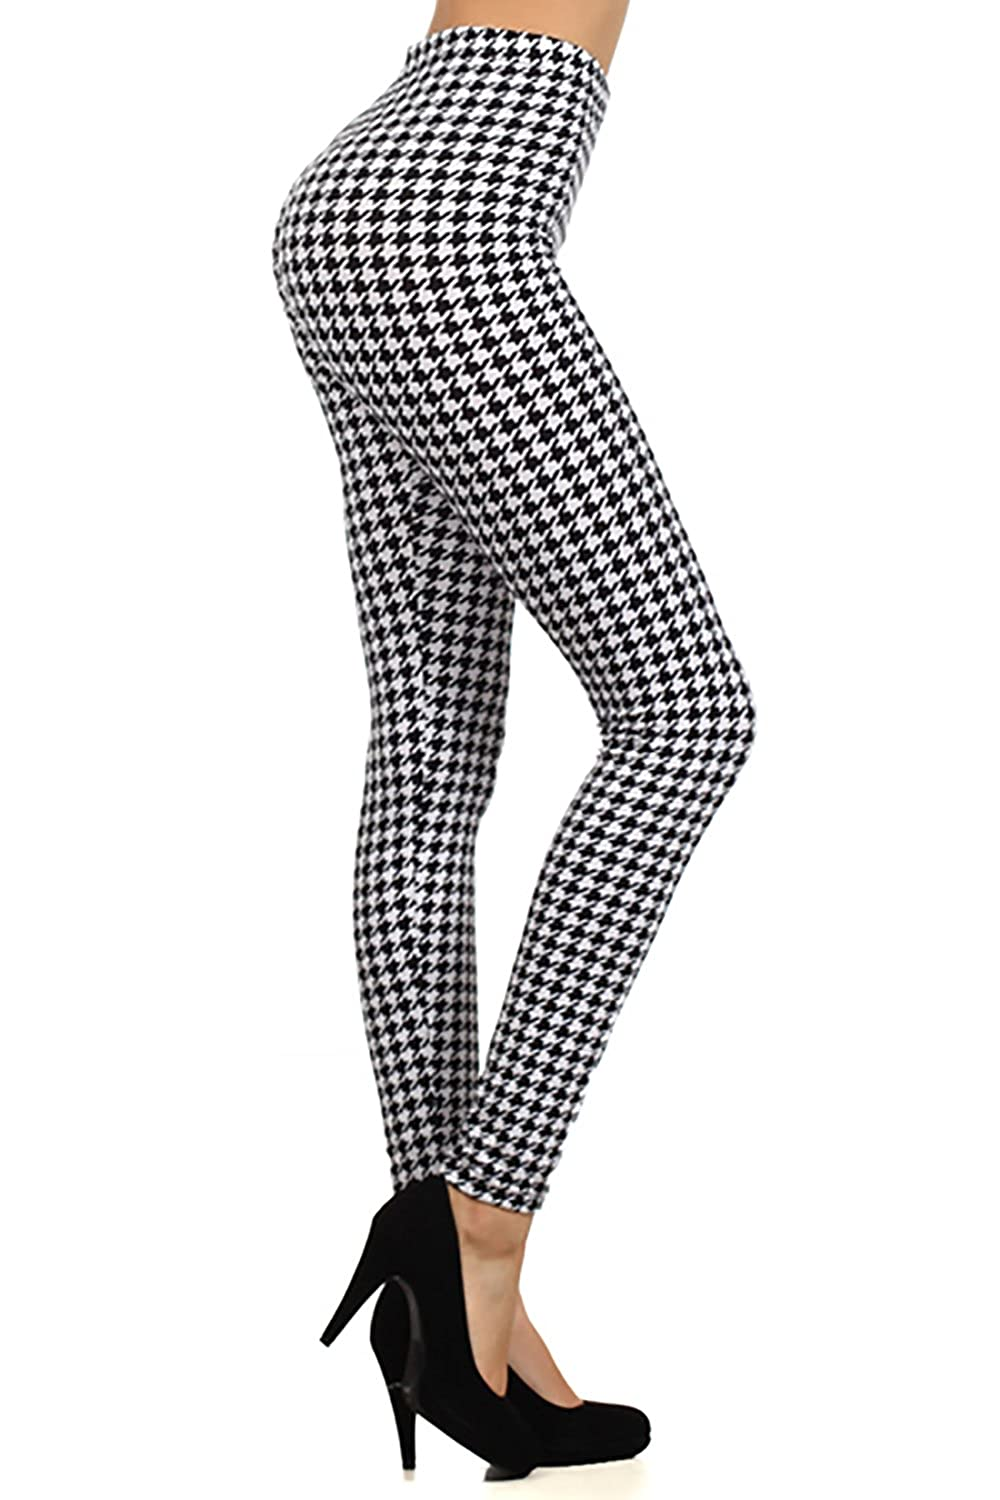 Houndstooth Pattern Graphic Print High Waist Leggings Pants Tights Black At Amazon Womens Clothing Store